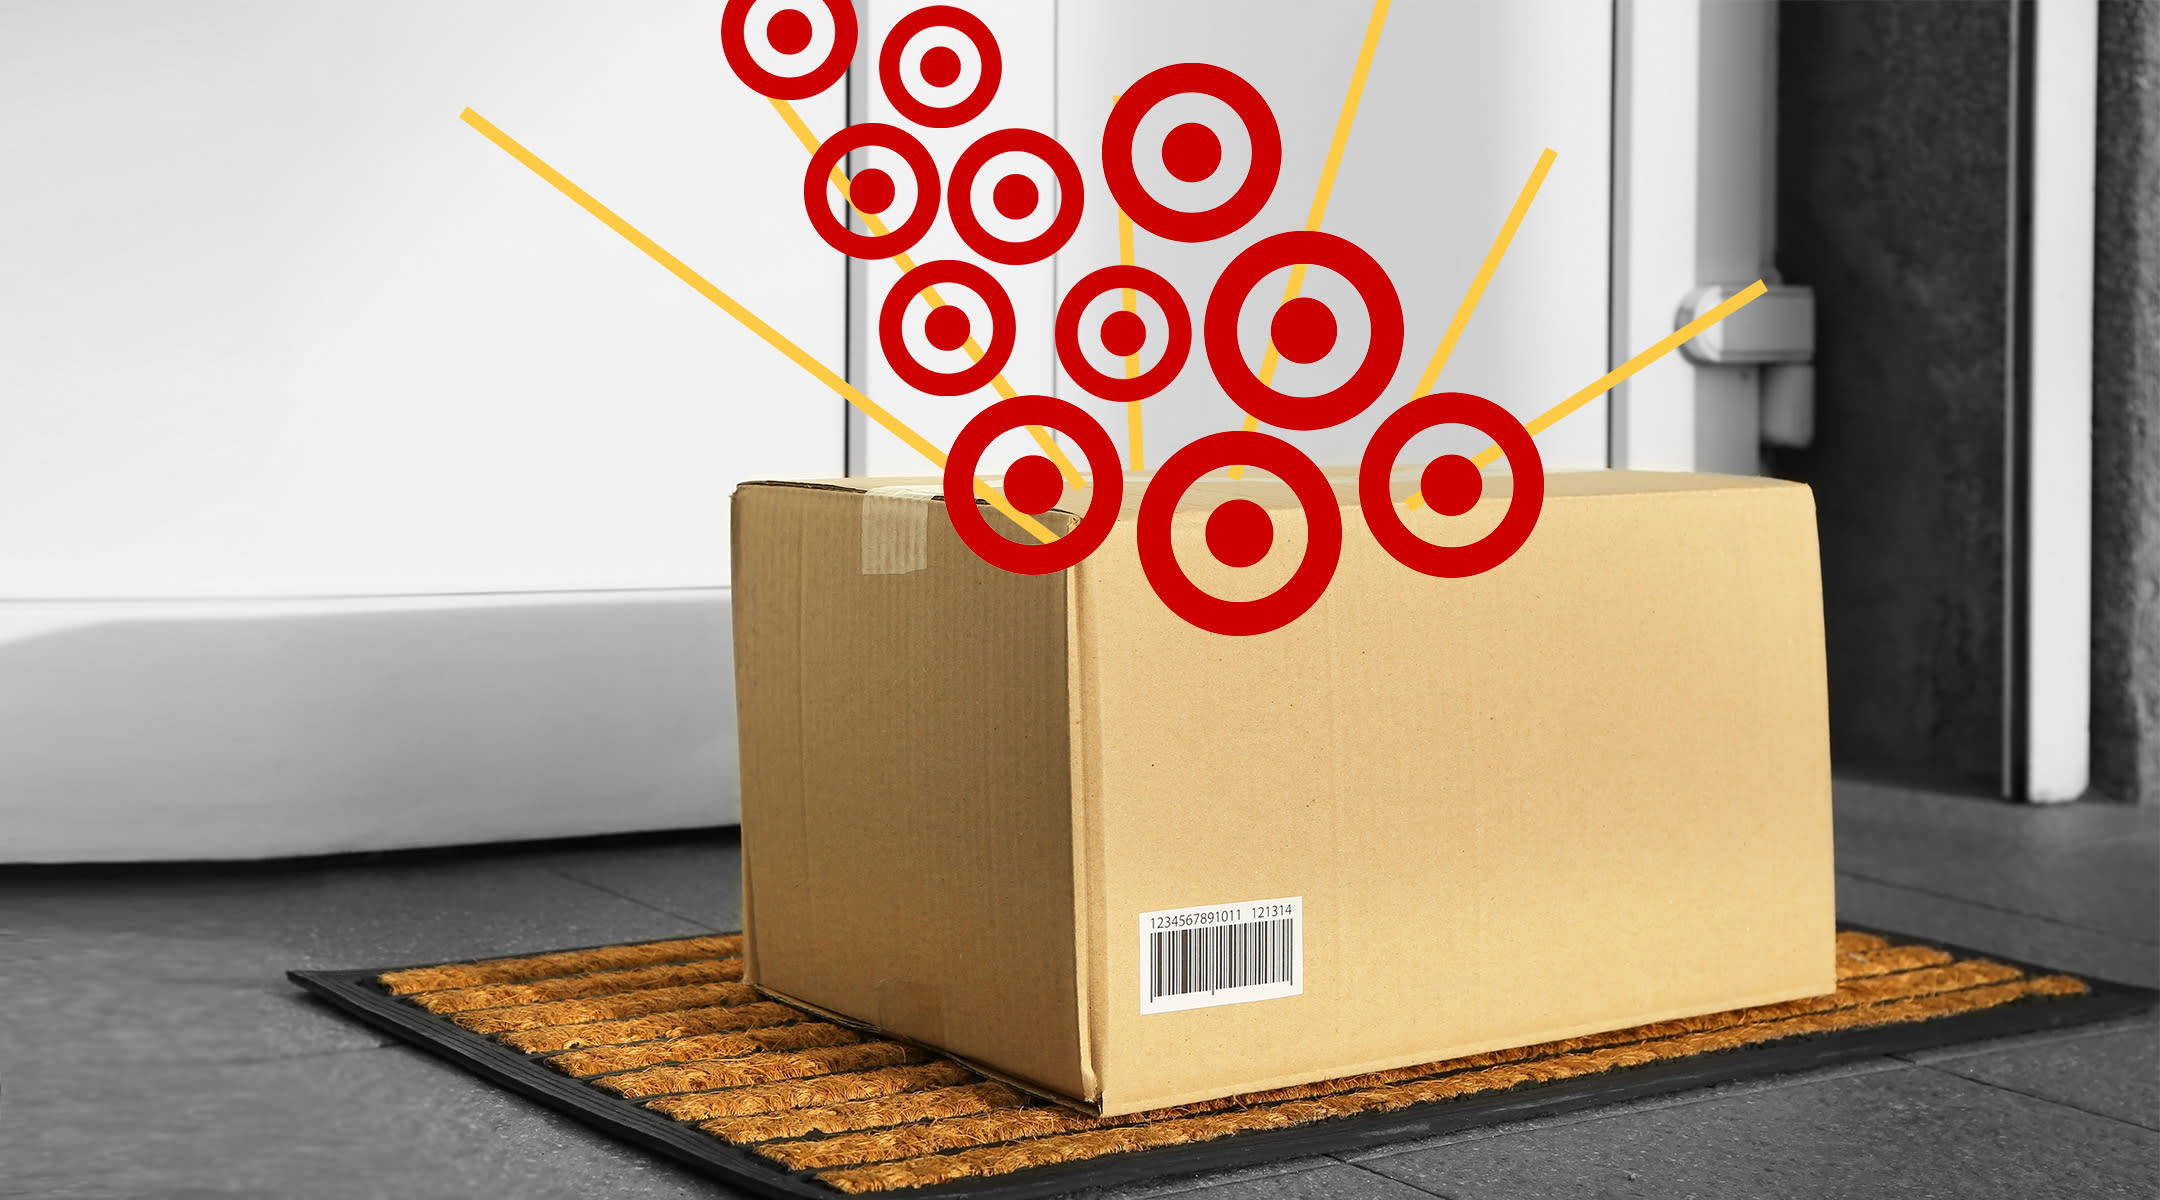 Target Offers Same-Day Delivery in Time for Holidays